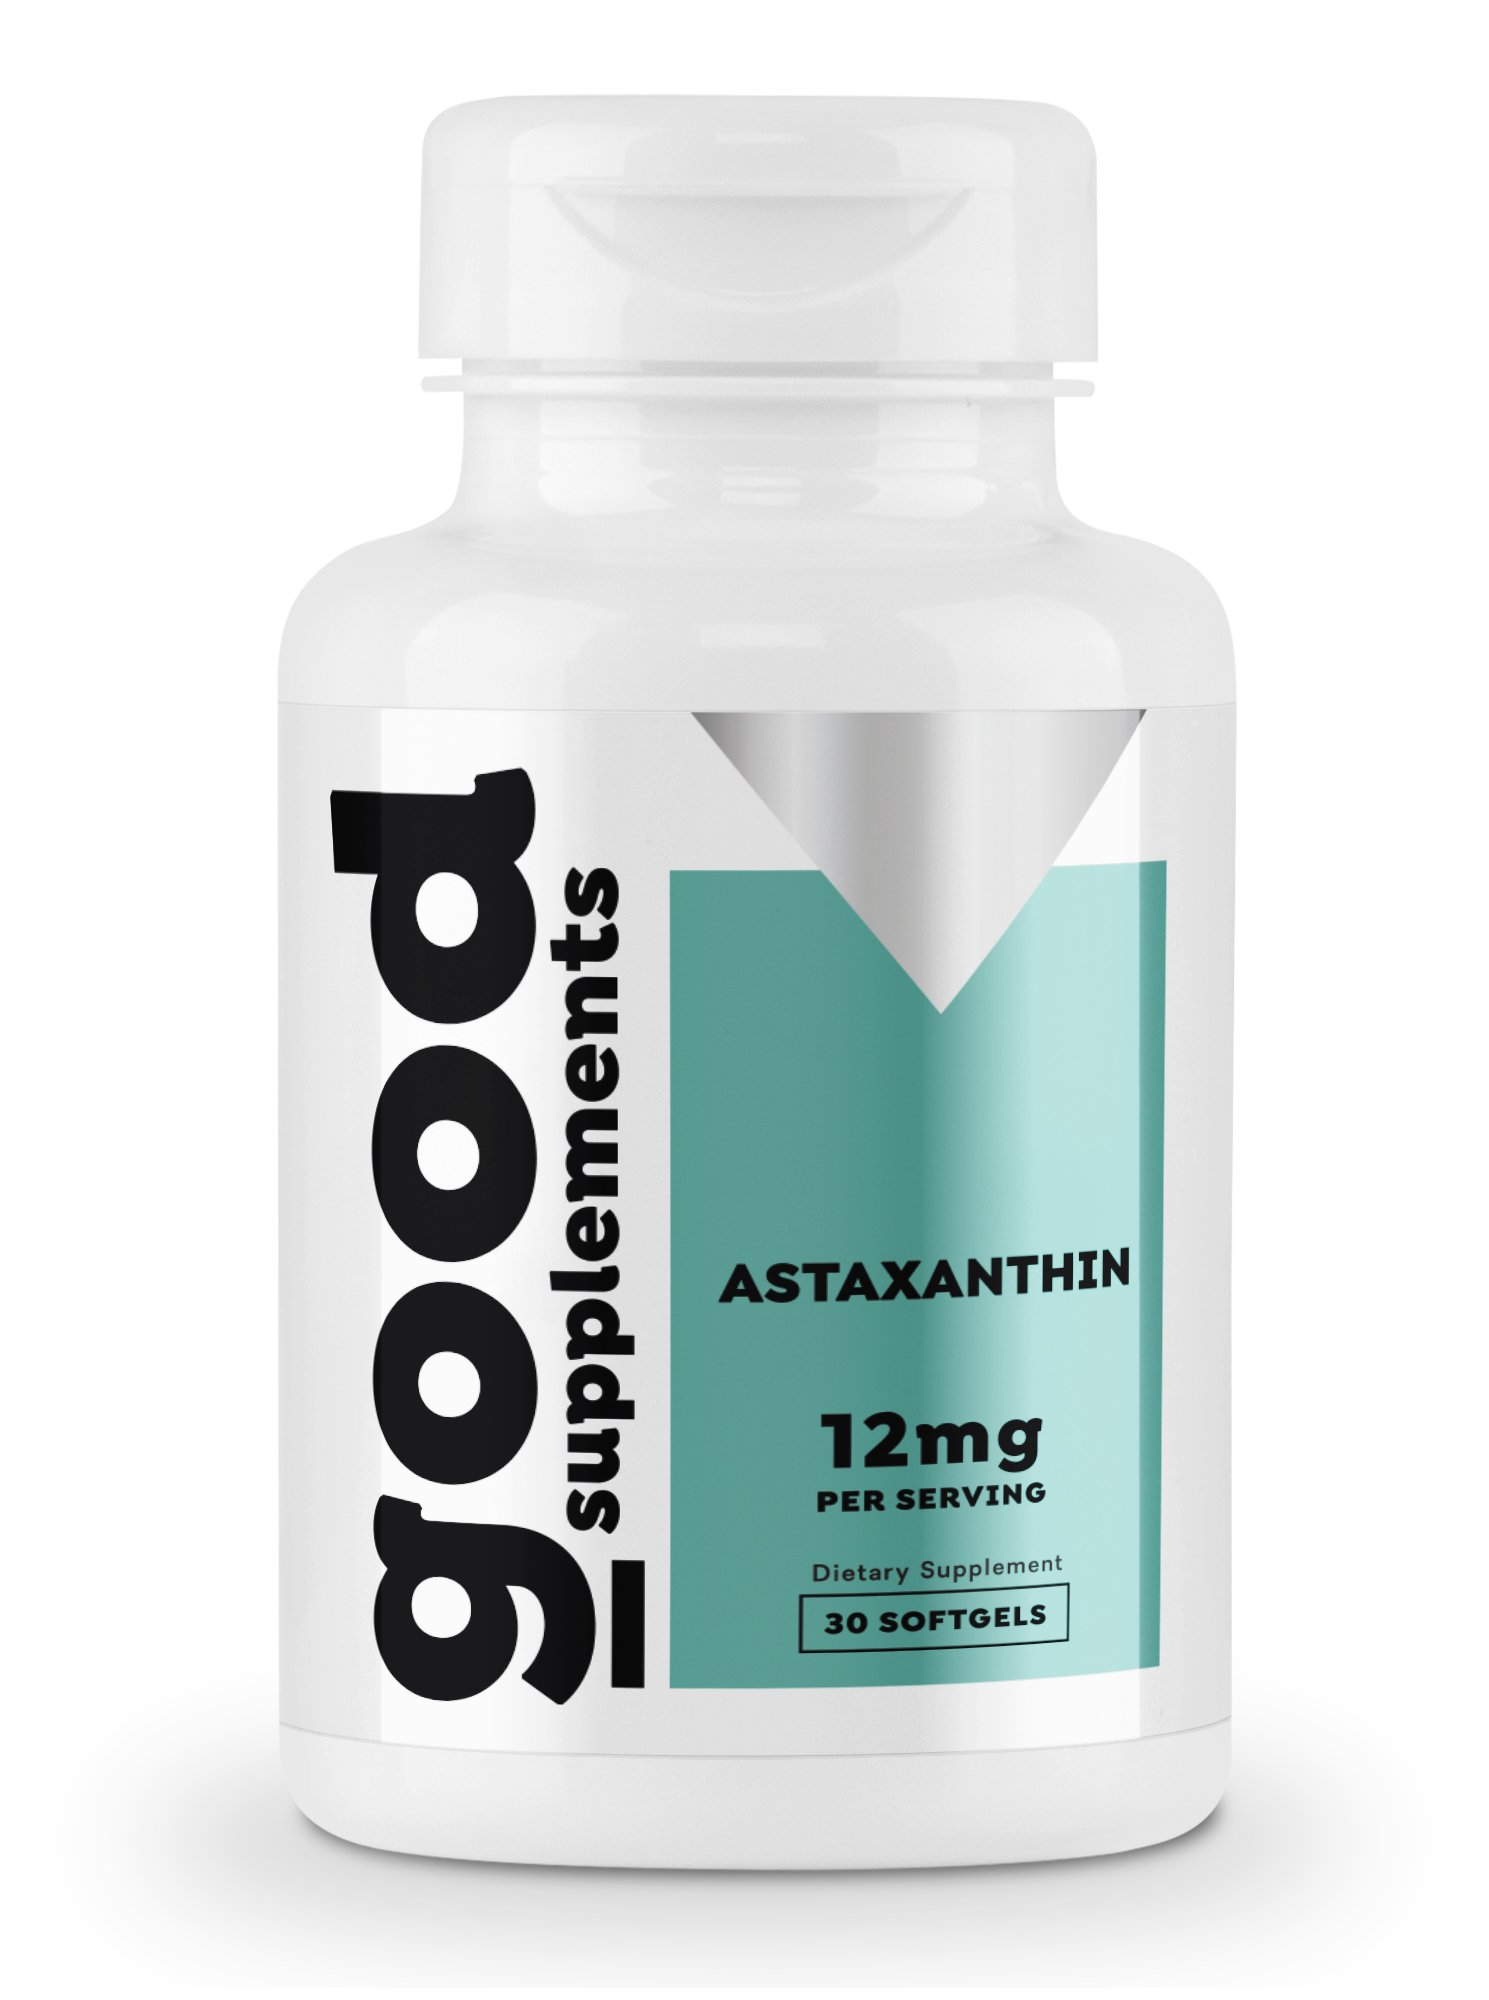 Max Strength Astaxanthin 12 mg - Natural Antioxidant for Skin Support, Eye Care, and Joint Health, Powerful Antioxidant, Results You Can Feel, 30 Softgels